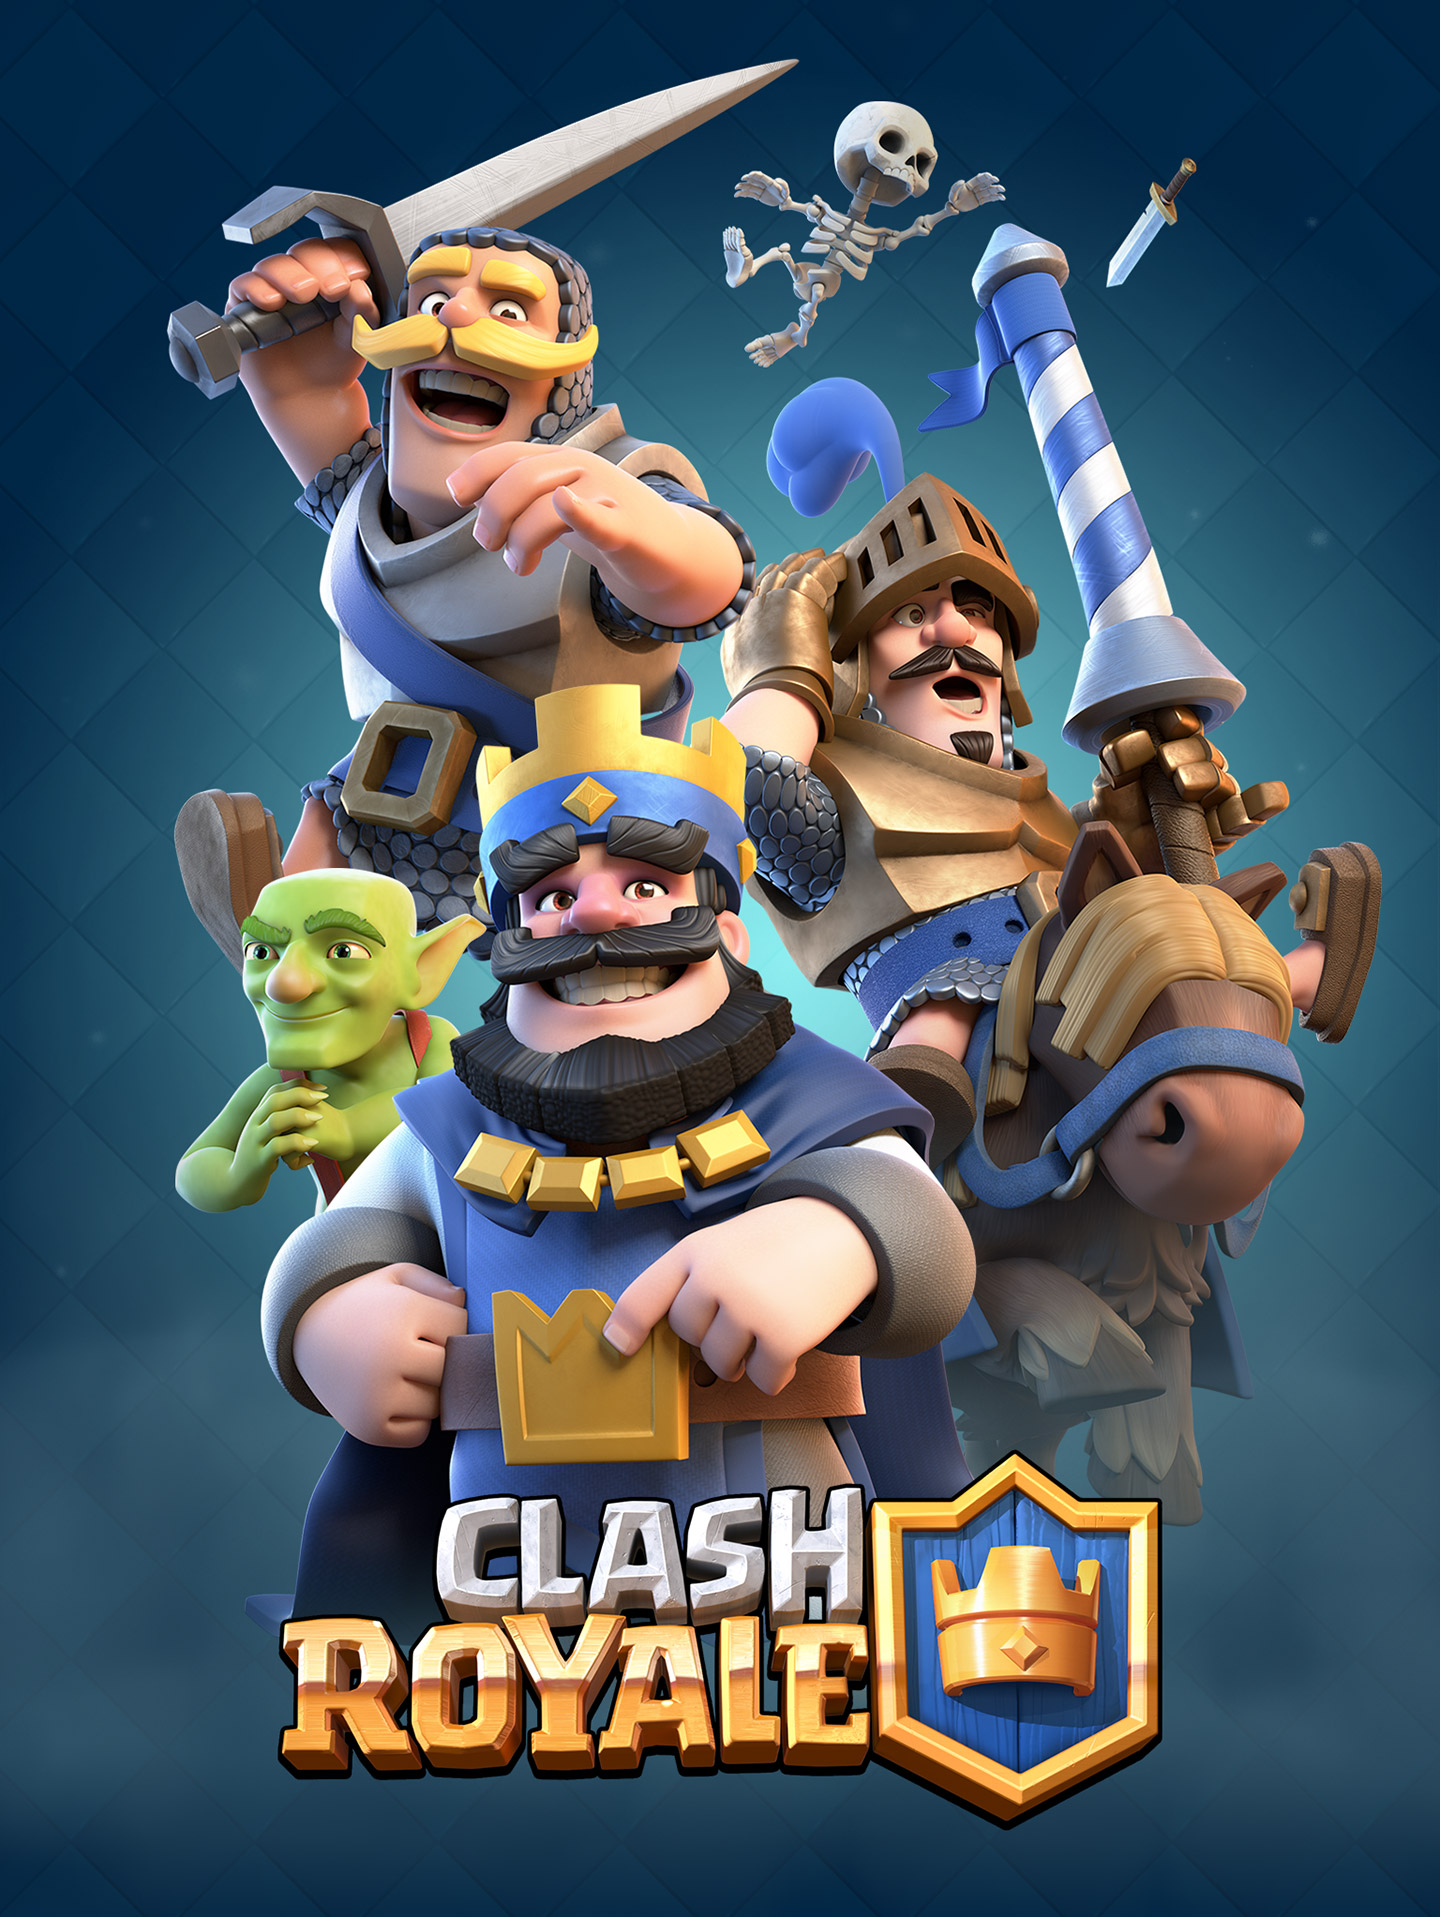 Quelle_Supercell_clashroyale_titlescreen_032016